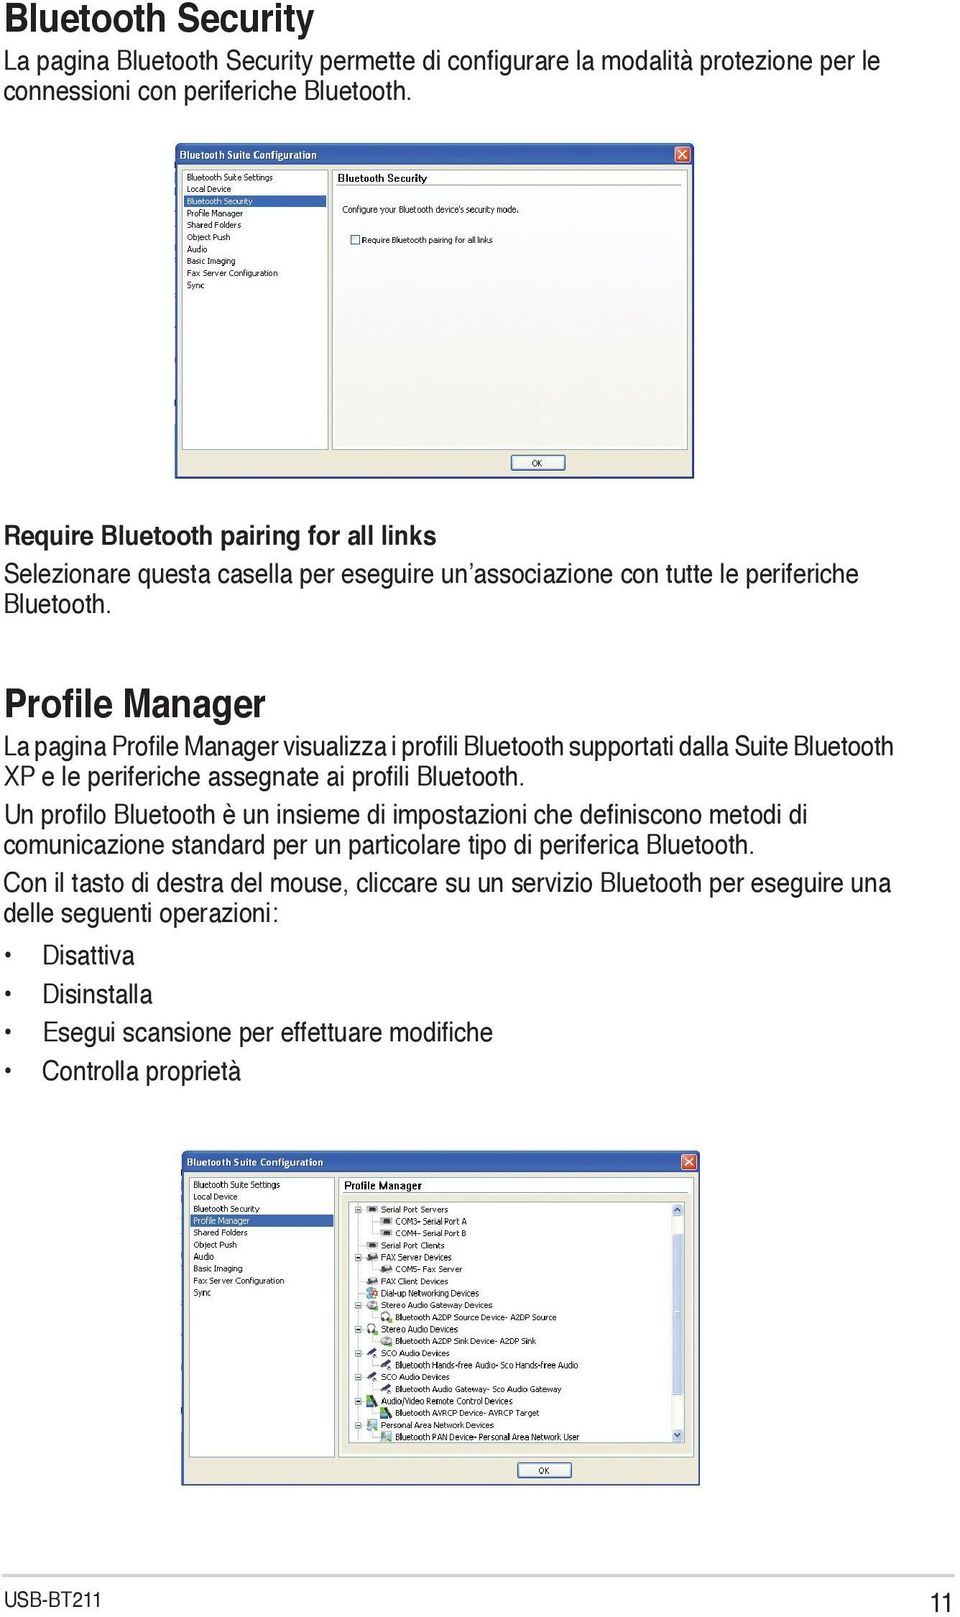 Profile Manager La pagina Profile Manager visualizza i profili Bluetooth supportati dalla Suite Bluetooth XP e le periferiche assegnate ai profili Bluetooth.